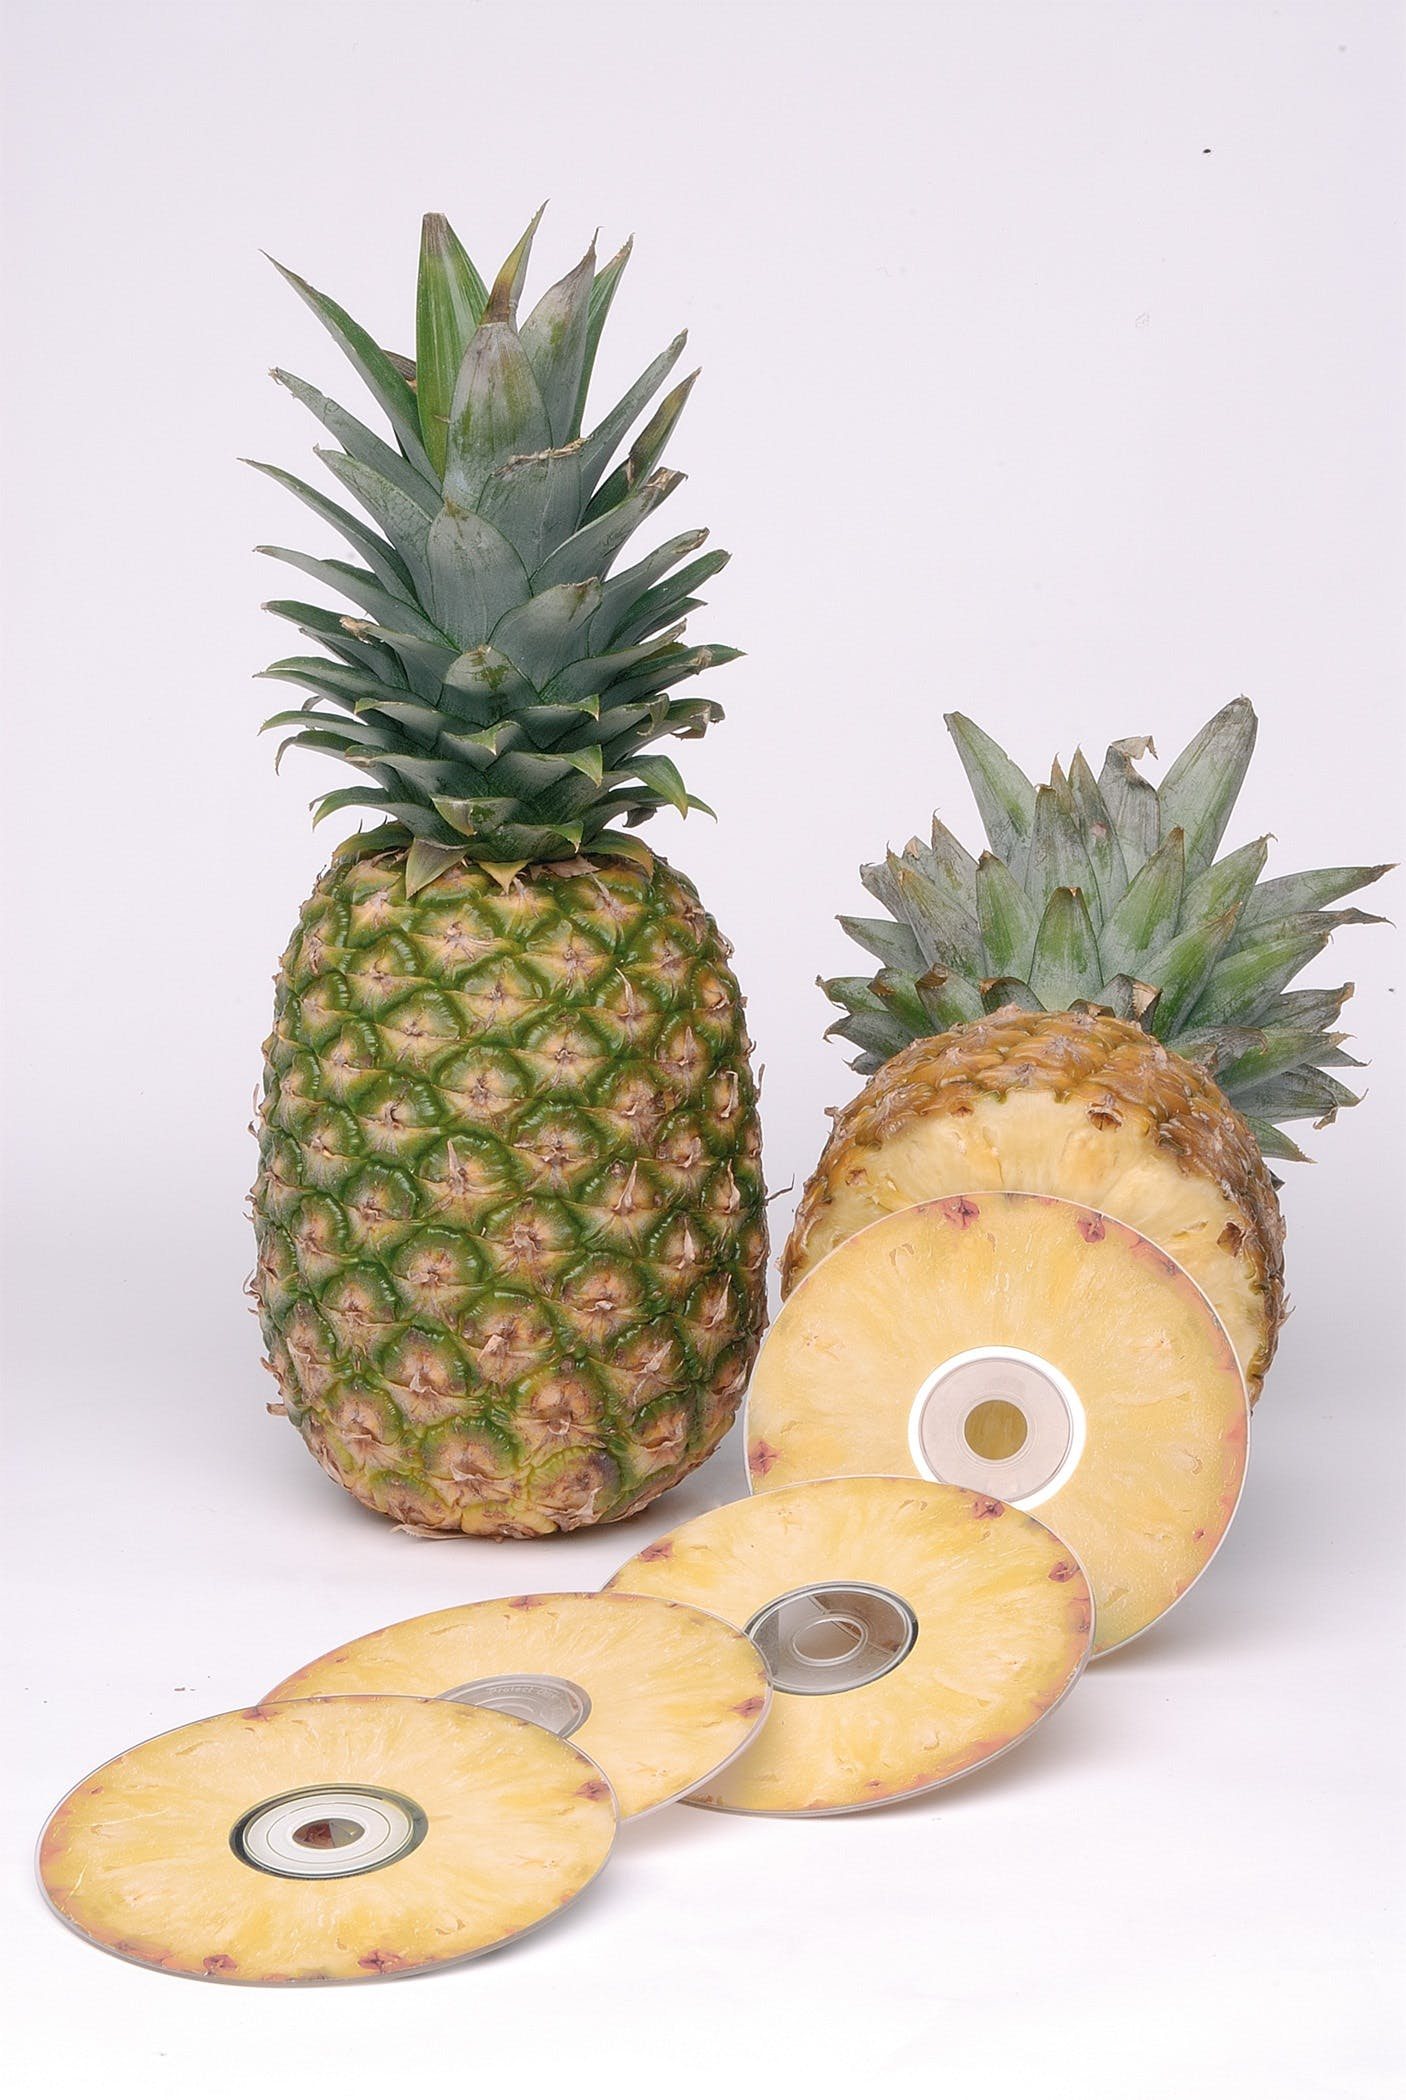 Pineapple and Pineapple Disc